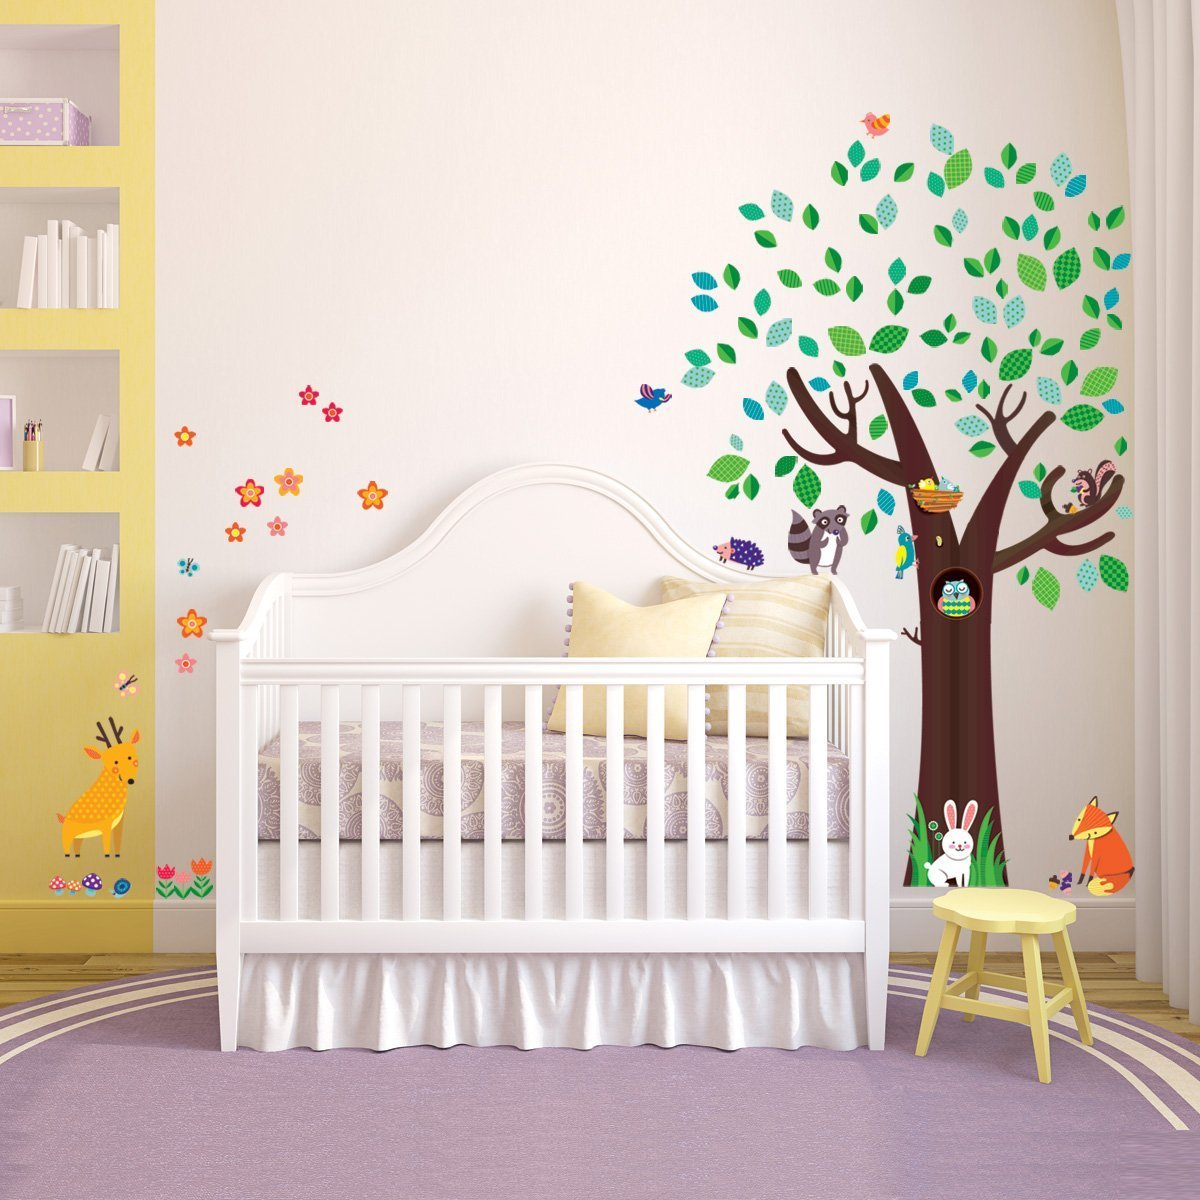 wandtattoo baum kinderzimmer baum wandtattoo im kinderzimmer 24 kreative anregungen wandtattoo. Black Bedroom Furniture Sets. Home Design Ideas